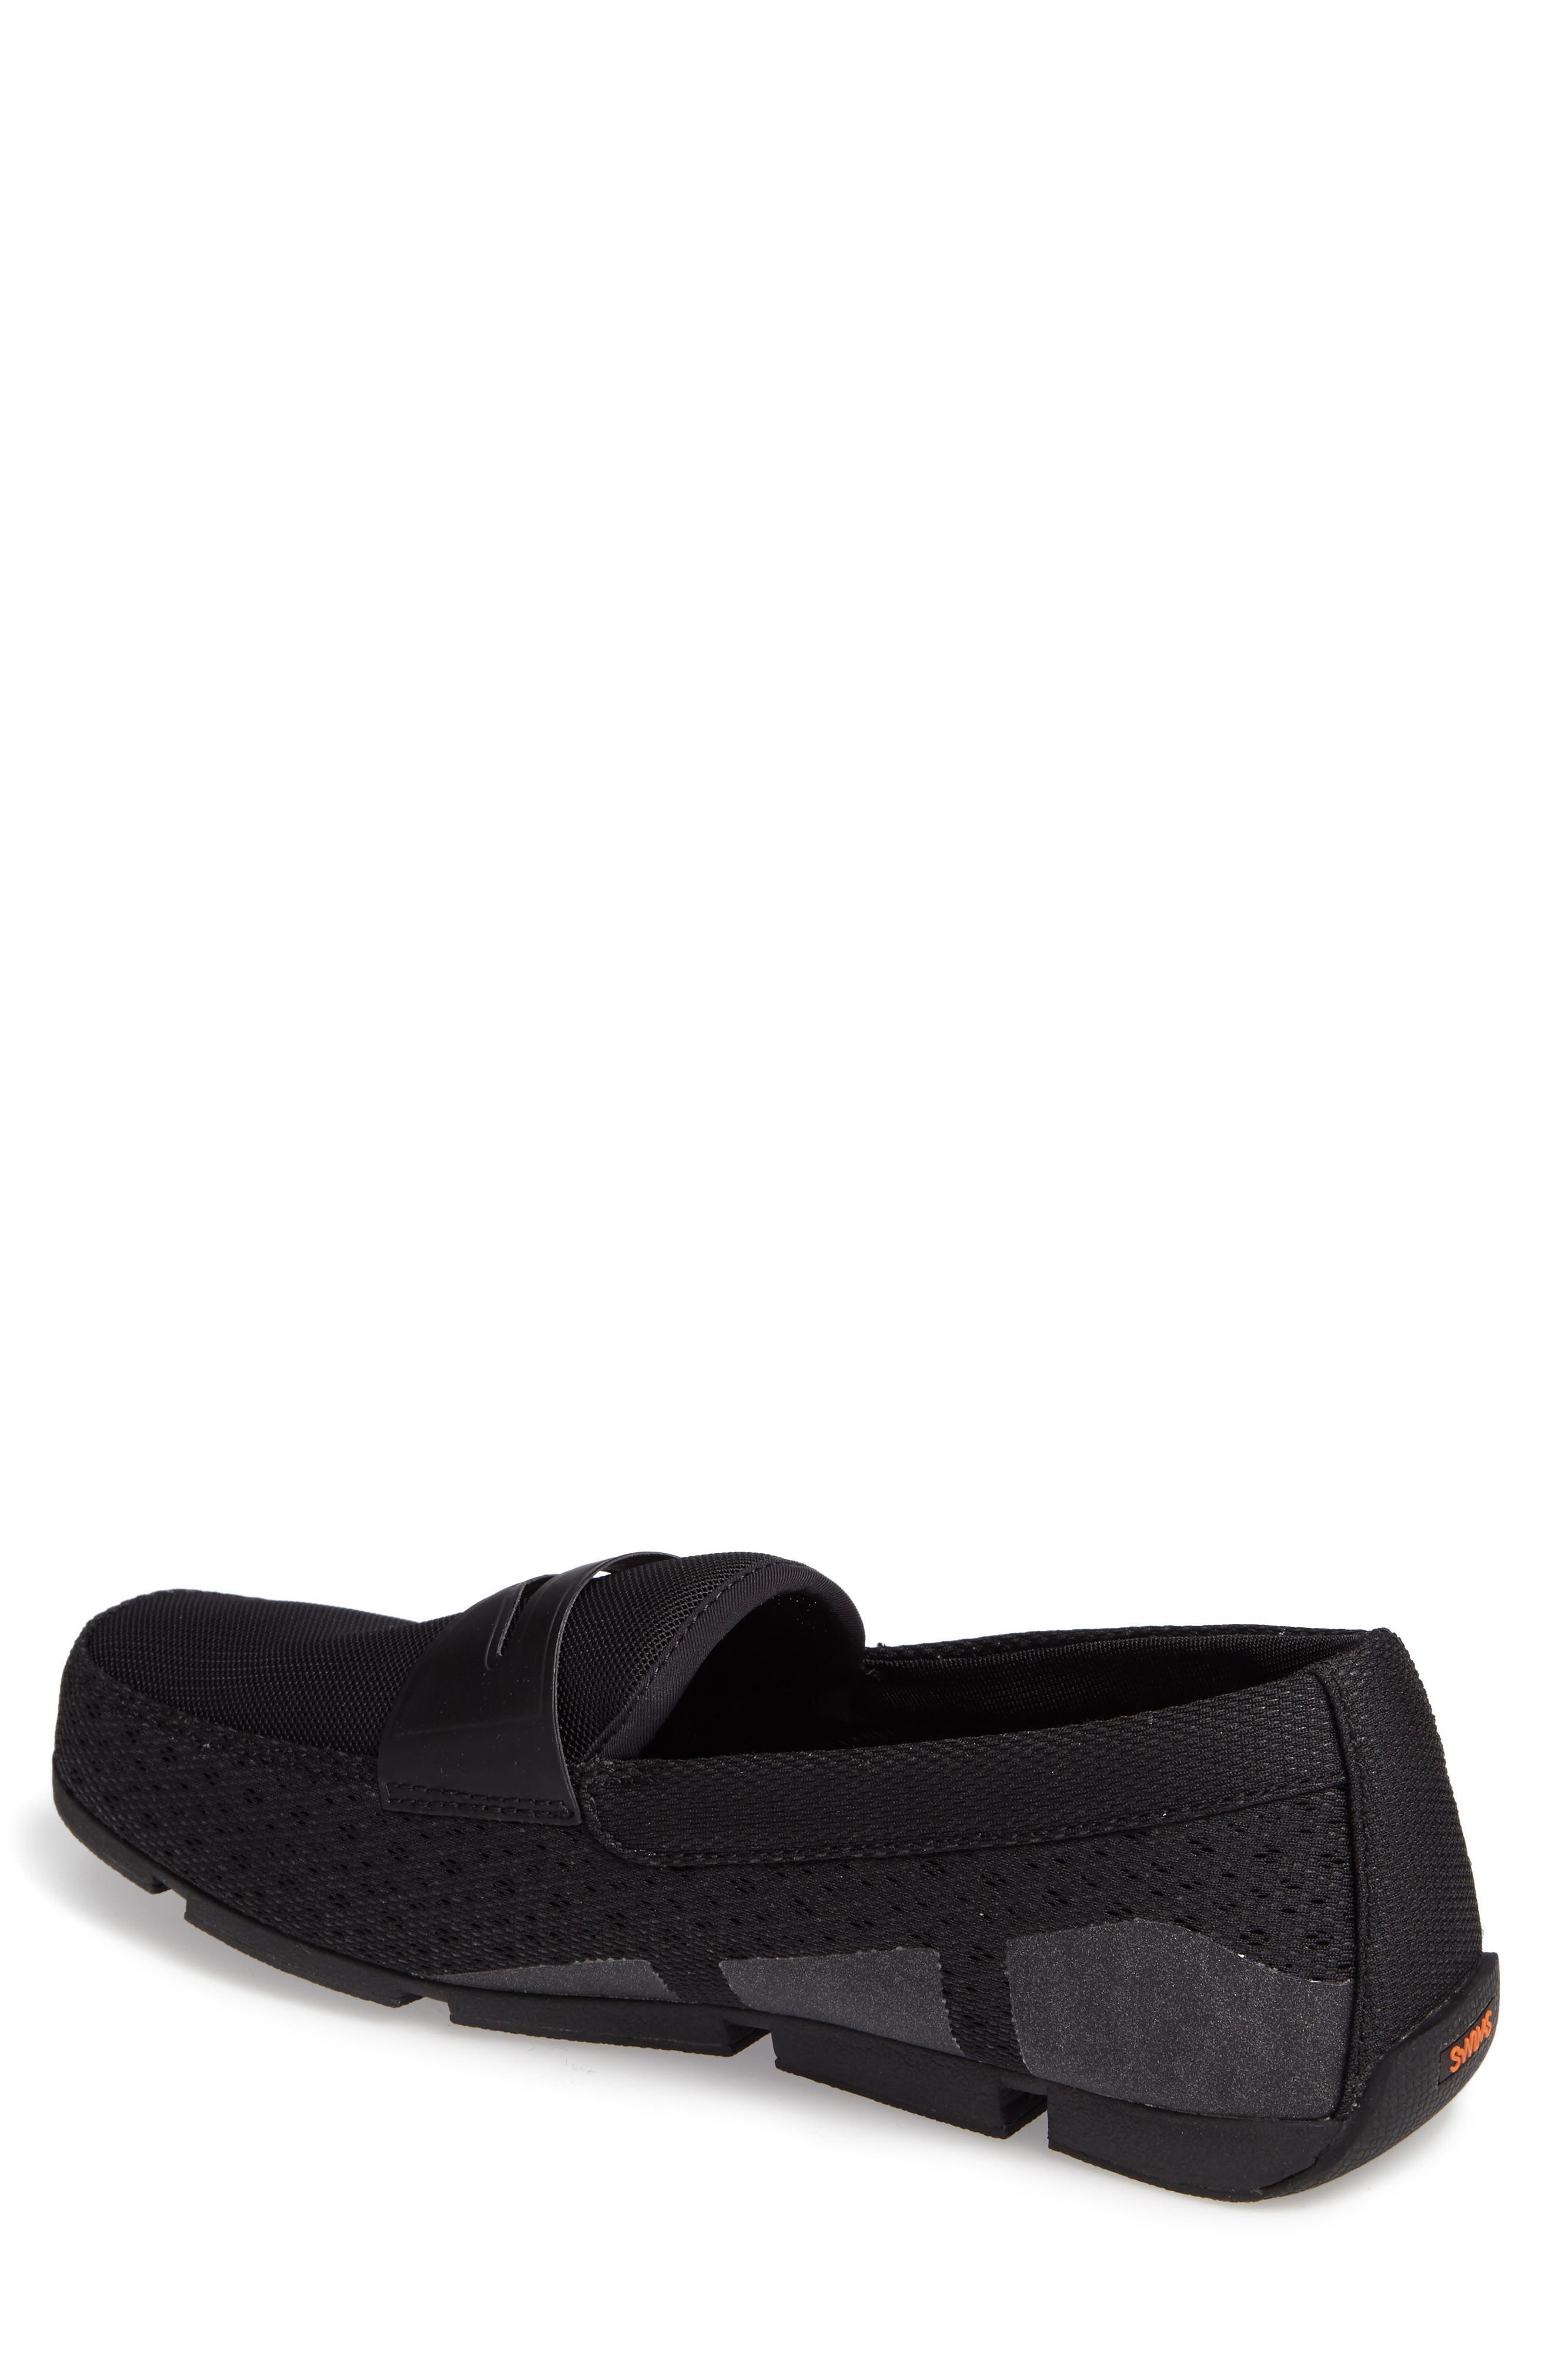 Breeze Penny Loafer,                             Alternate thumbnail 2, color,                             001